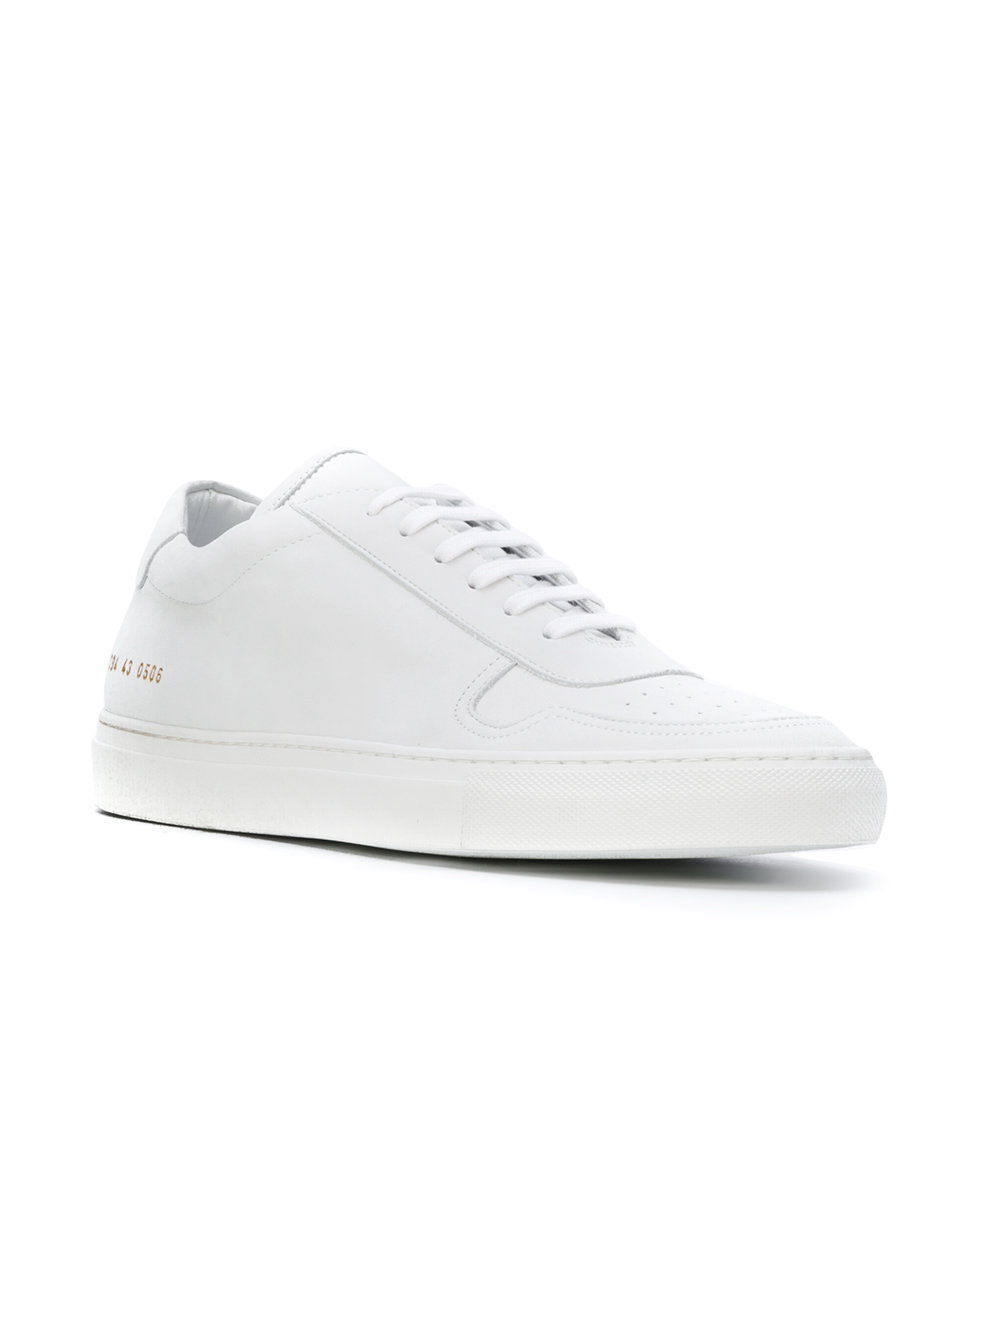 [VIPSALE] Common Projects/ Bball スニーカー☆ホワイト